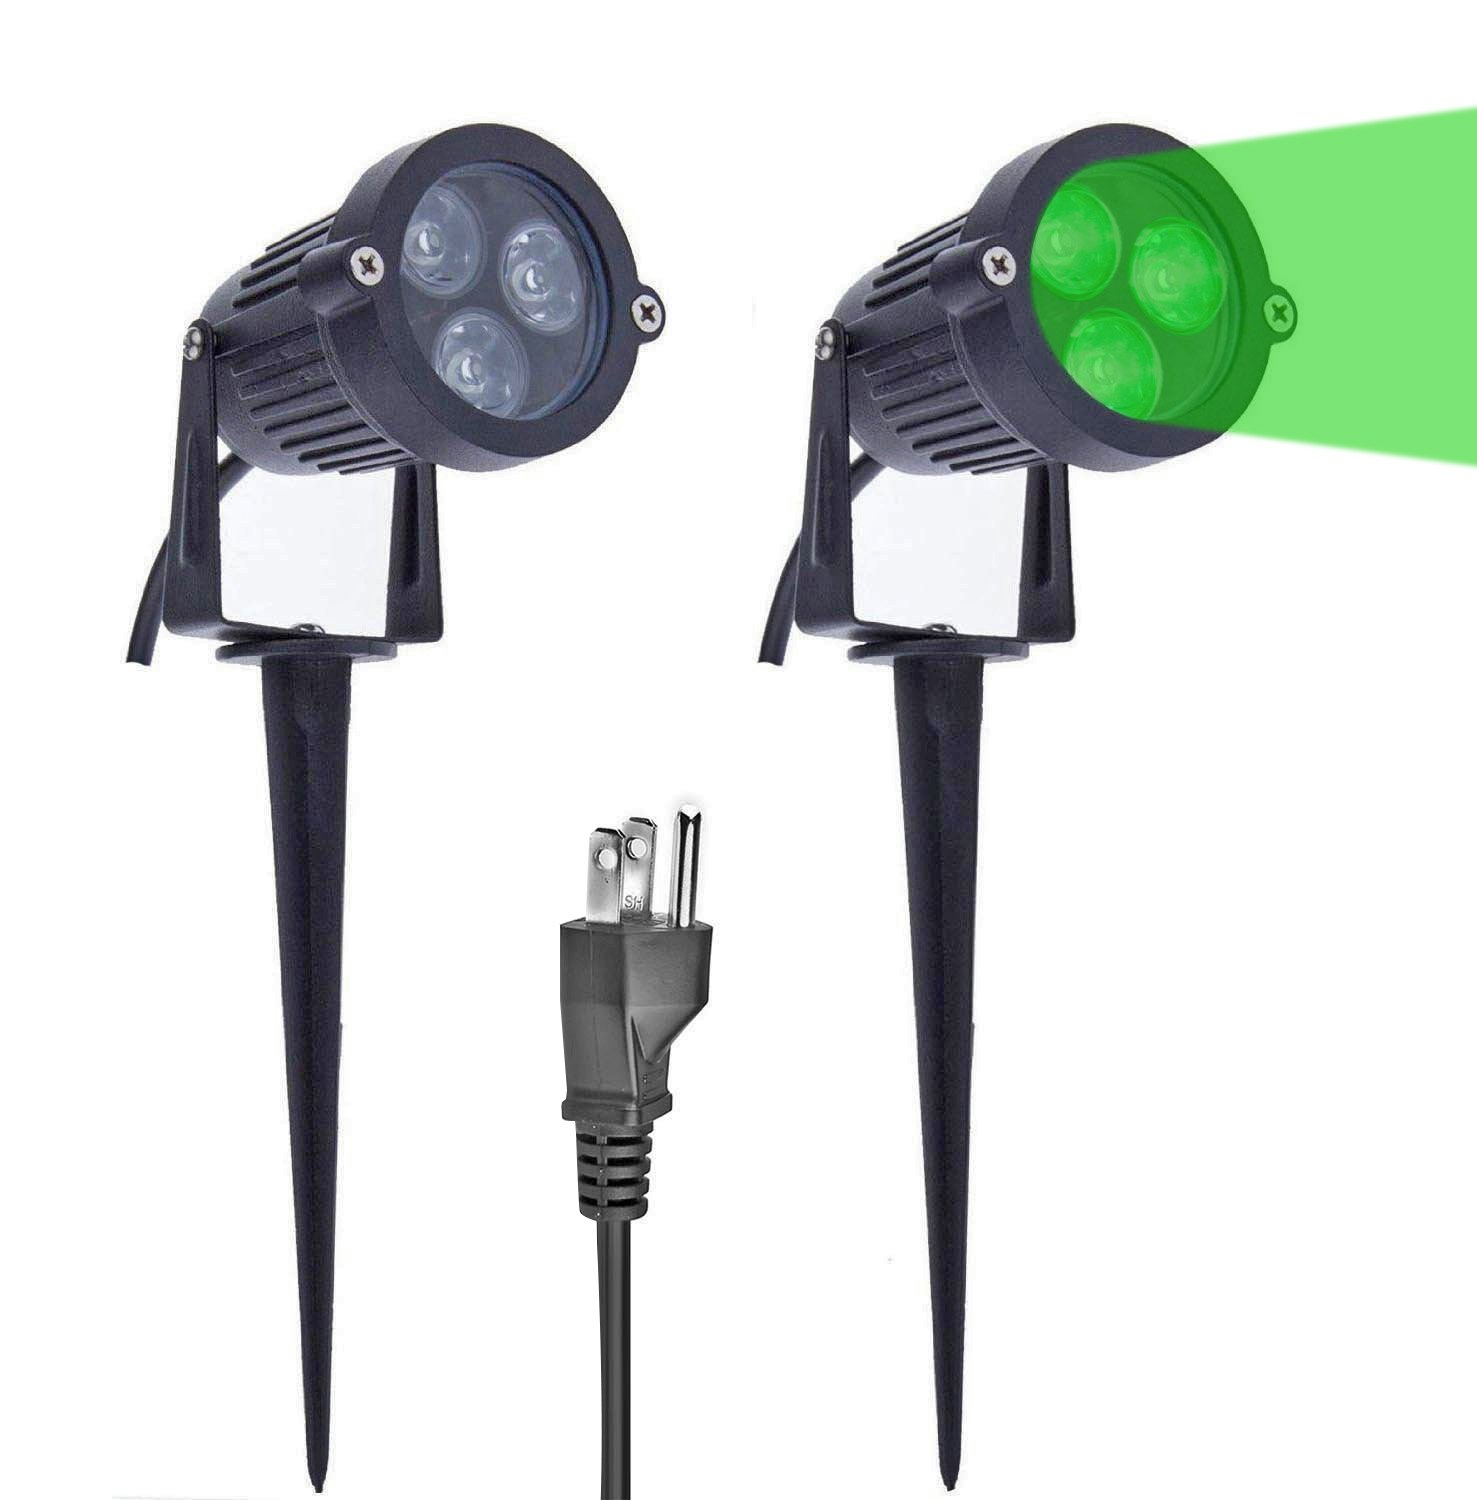 Lemonbest Pack of 2 Outdoor Water-resistant LED Lawn Garden Landscape Lamp Wall Yard Path Patio Lighting Spot Lights Green AC Spiked Stand with Power Plug by LemonBest